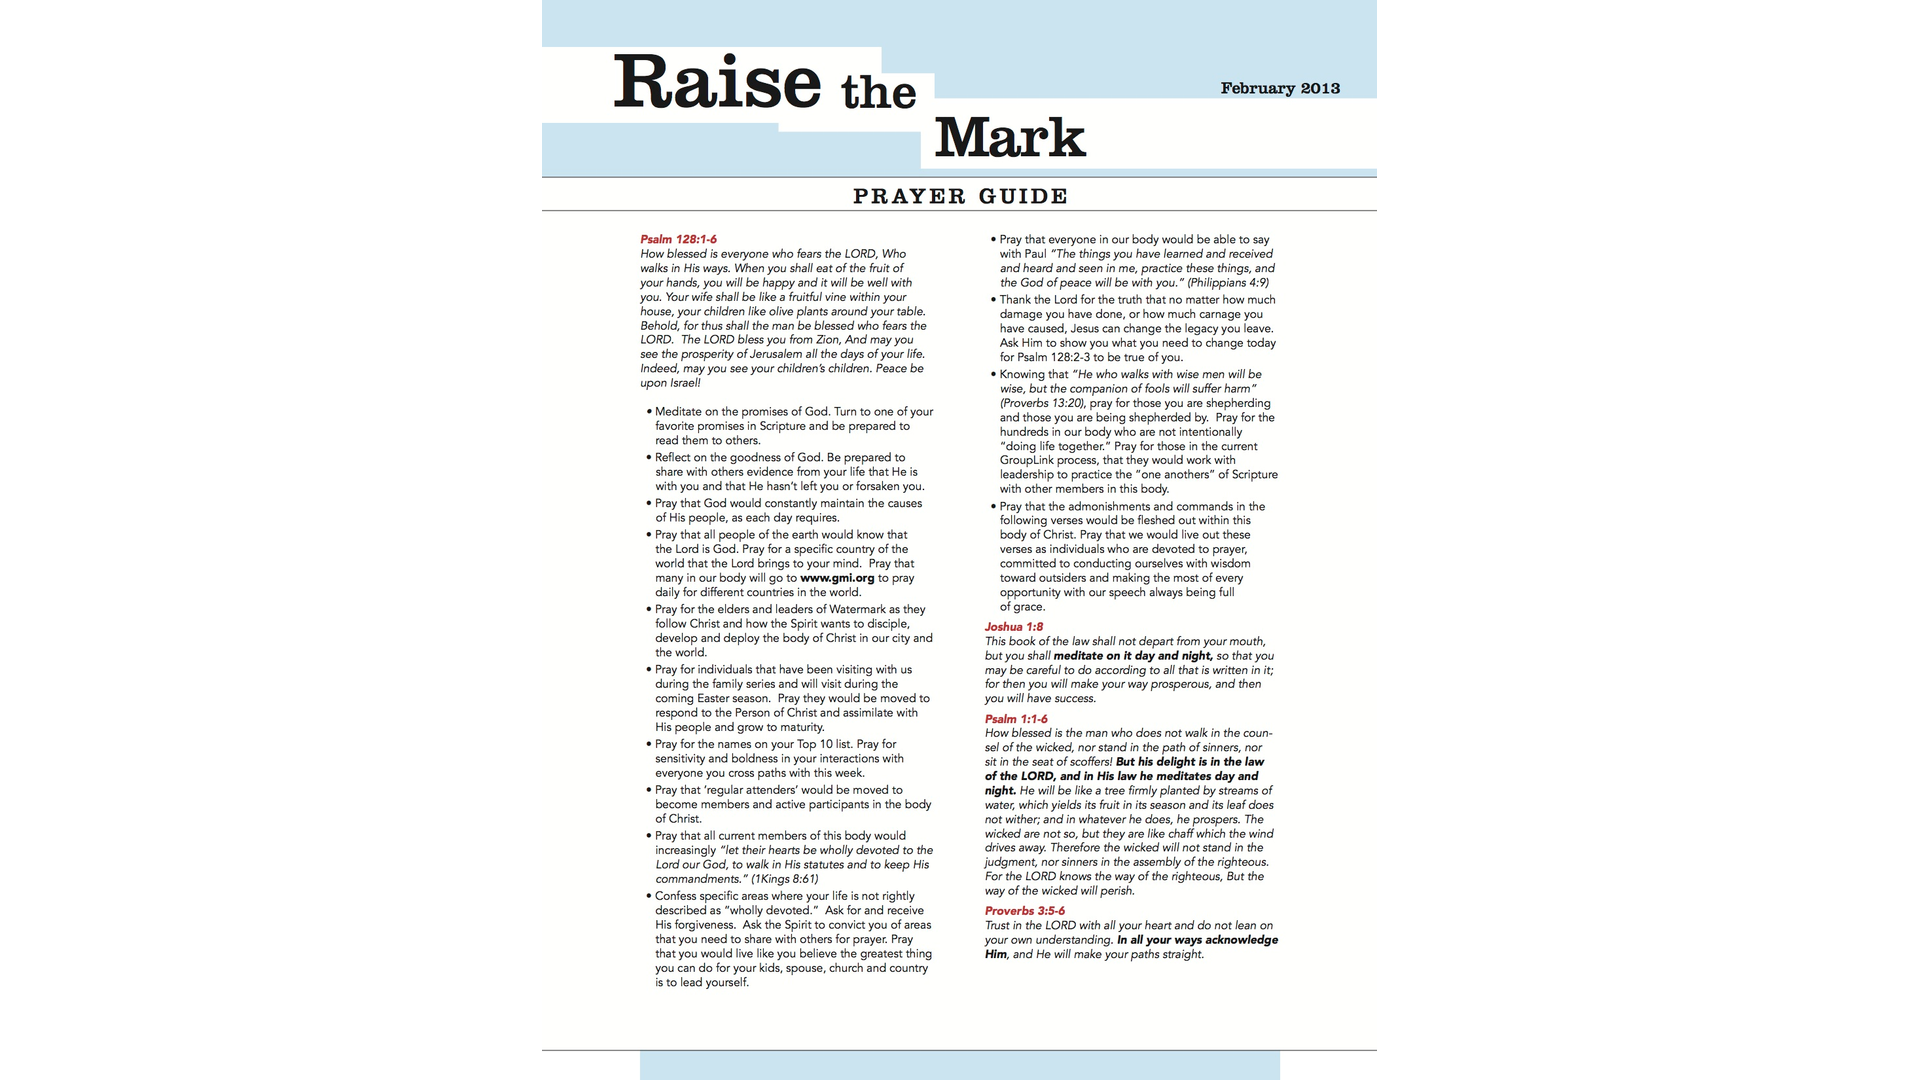 Download The Raise The Mark Prayer Guide From February 2013 Hero Image